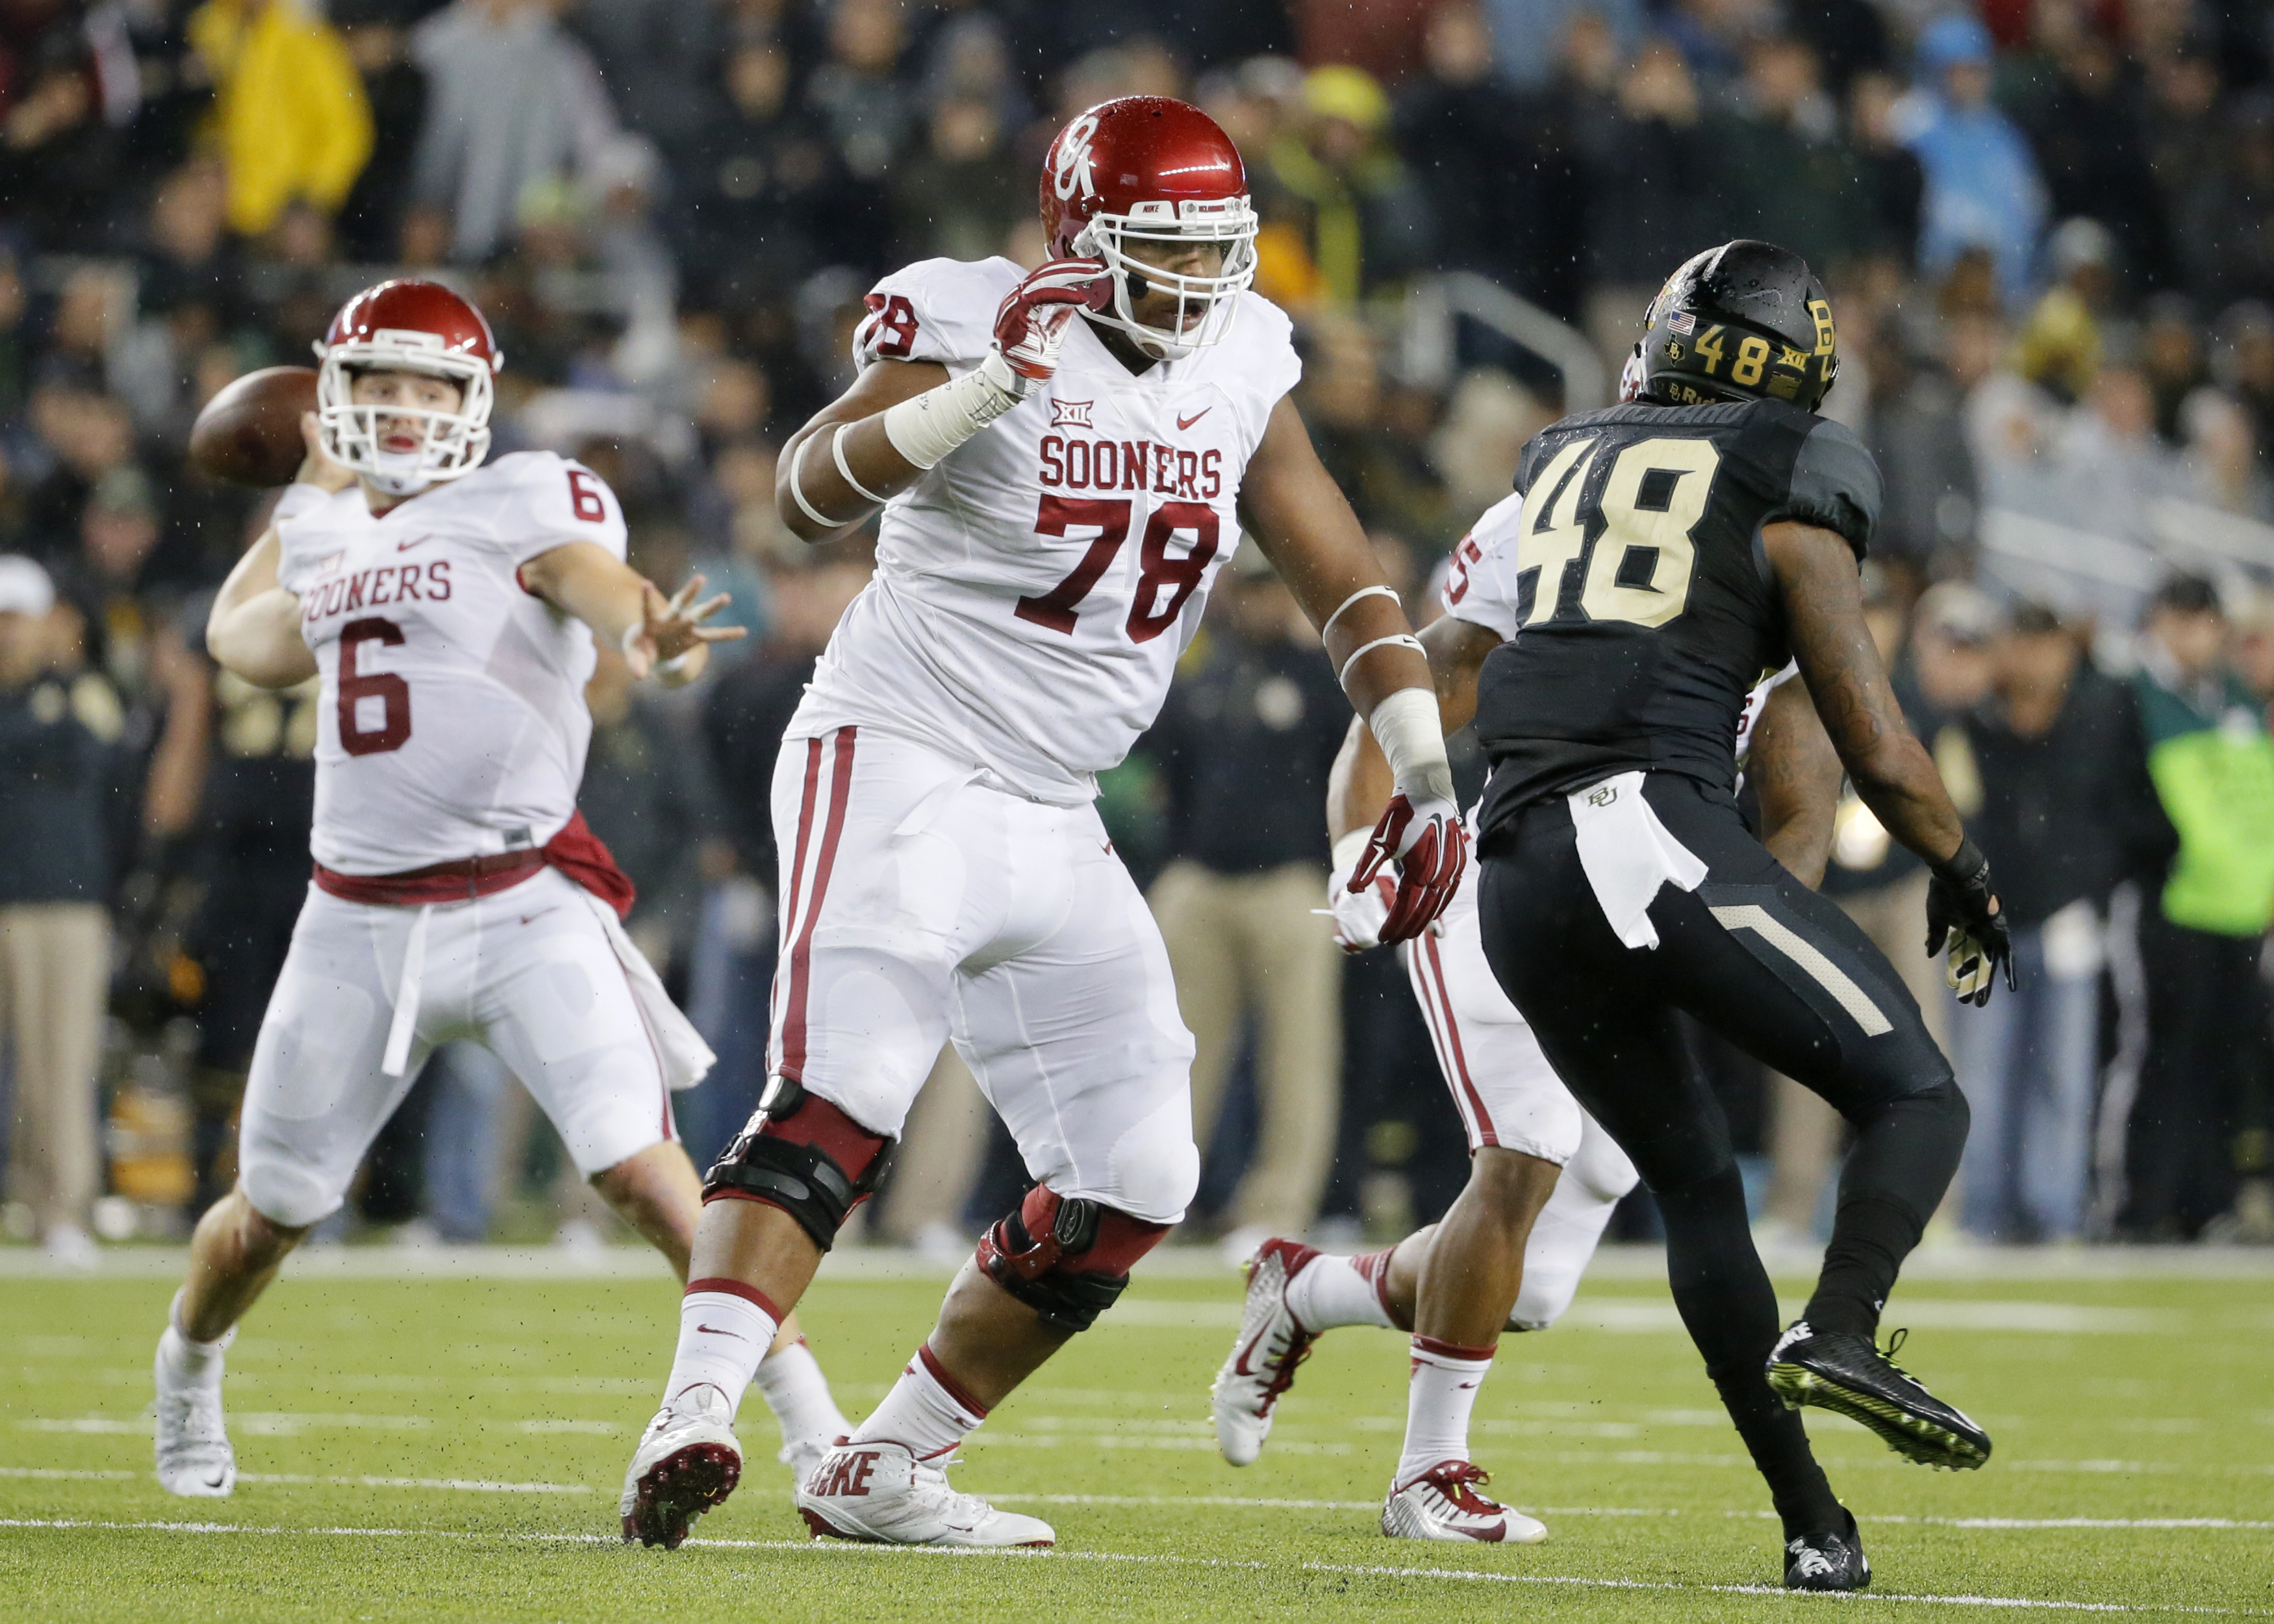 """FILE - In this Nov. 14, 2015, file photo, Oklahoma offensive tackle Orlando Brown (78) keeps Baylor's Travon Blanchard (48) away from quarterback Baker Mayfield during an NCAA college football game in Waco, Texas. Orlando """"Zeus"""" Brown Jr. is a second team"""